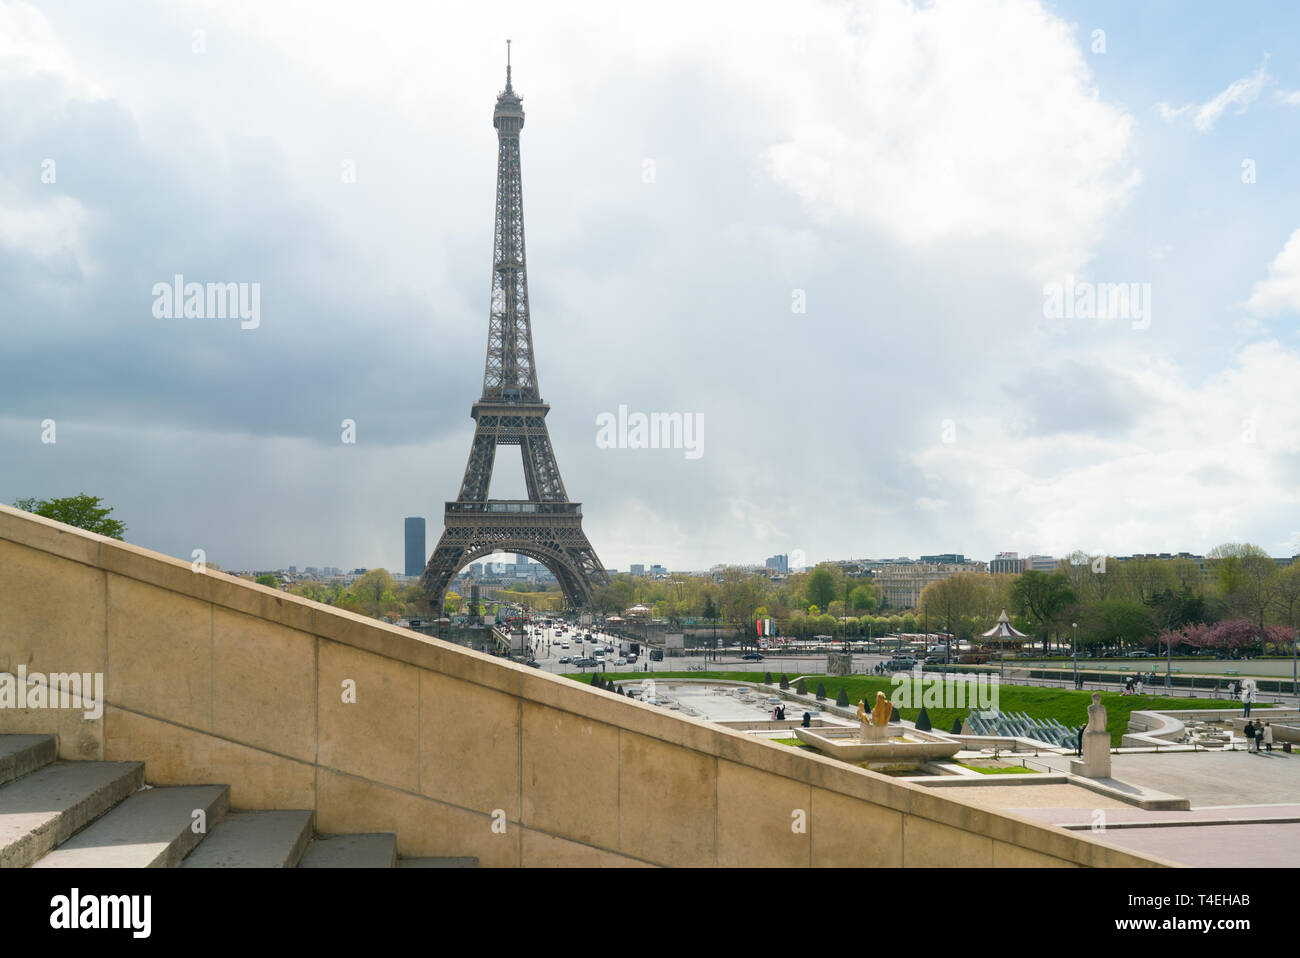 view of Eiffel Tower from Trocadero against a cloudy sky - Stock Image